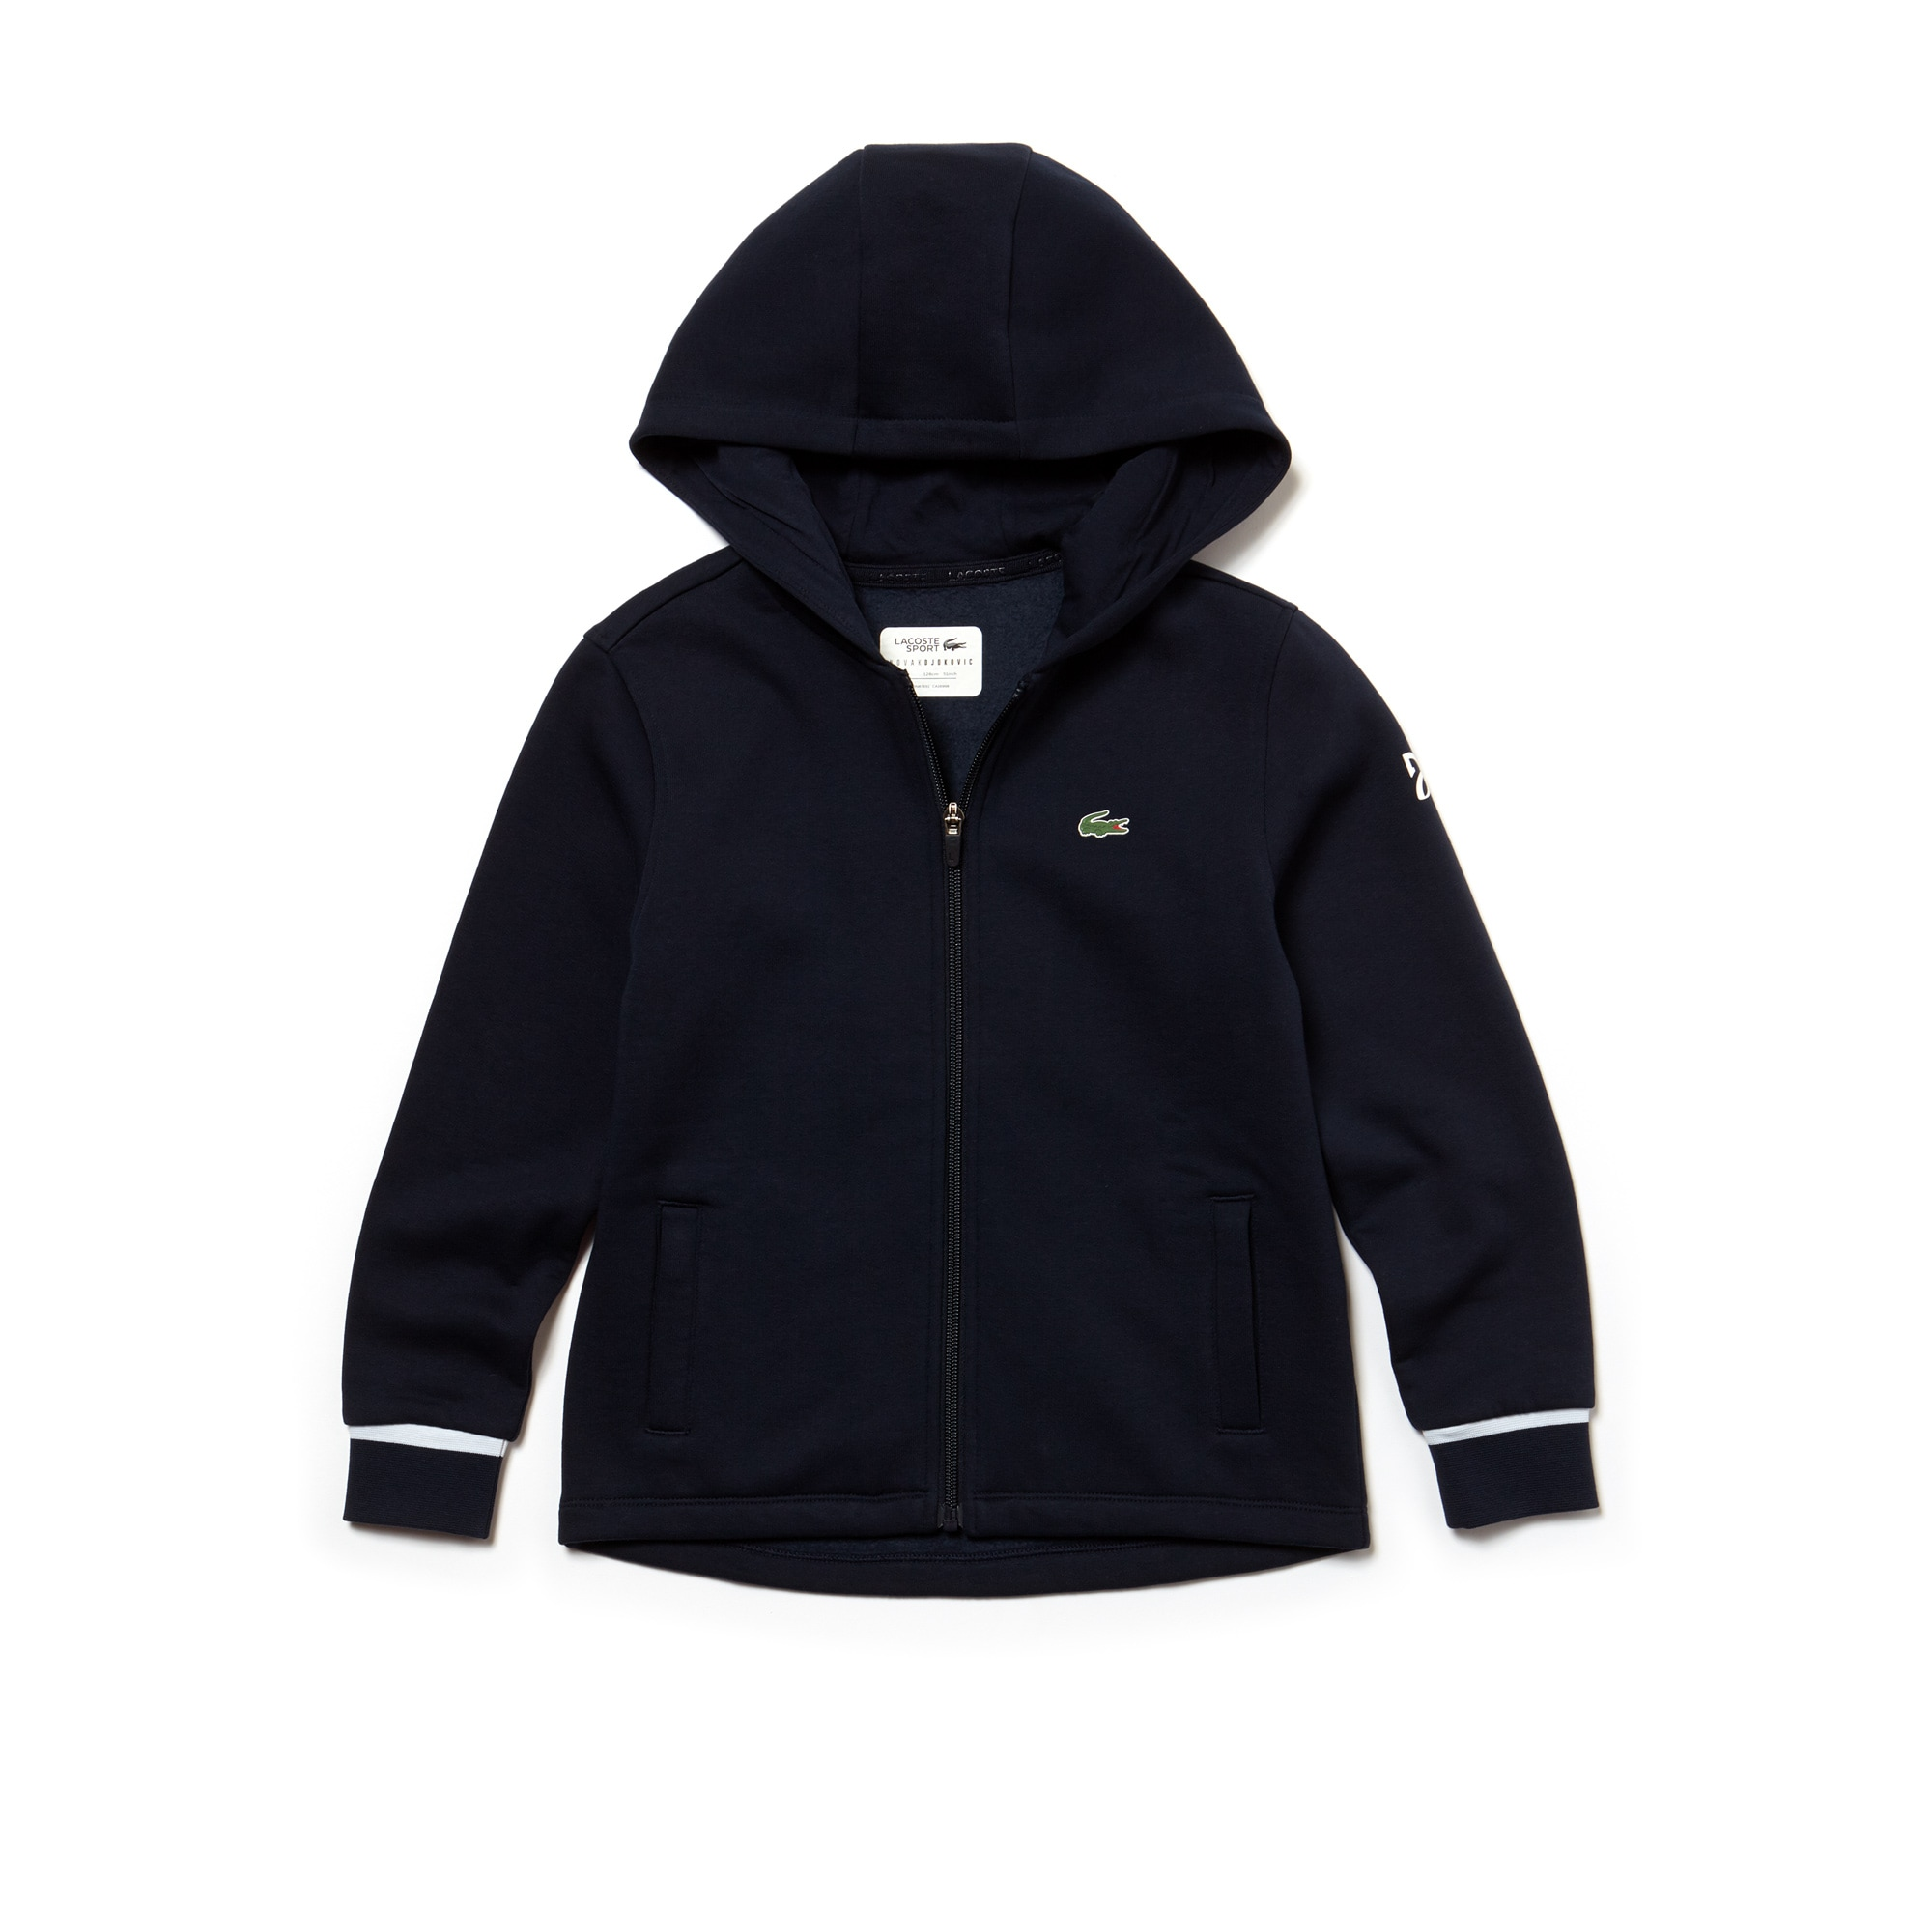 Sudadera Con Capucha Niño Lacoste Sport Collection Novak Djokovic Support With Style De Felpa